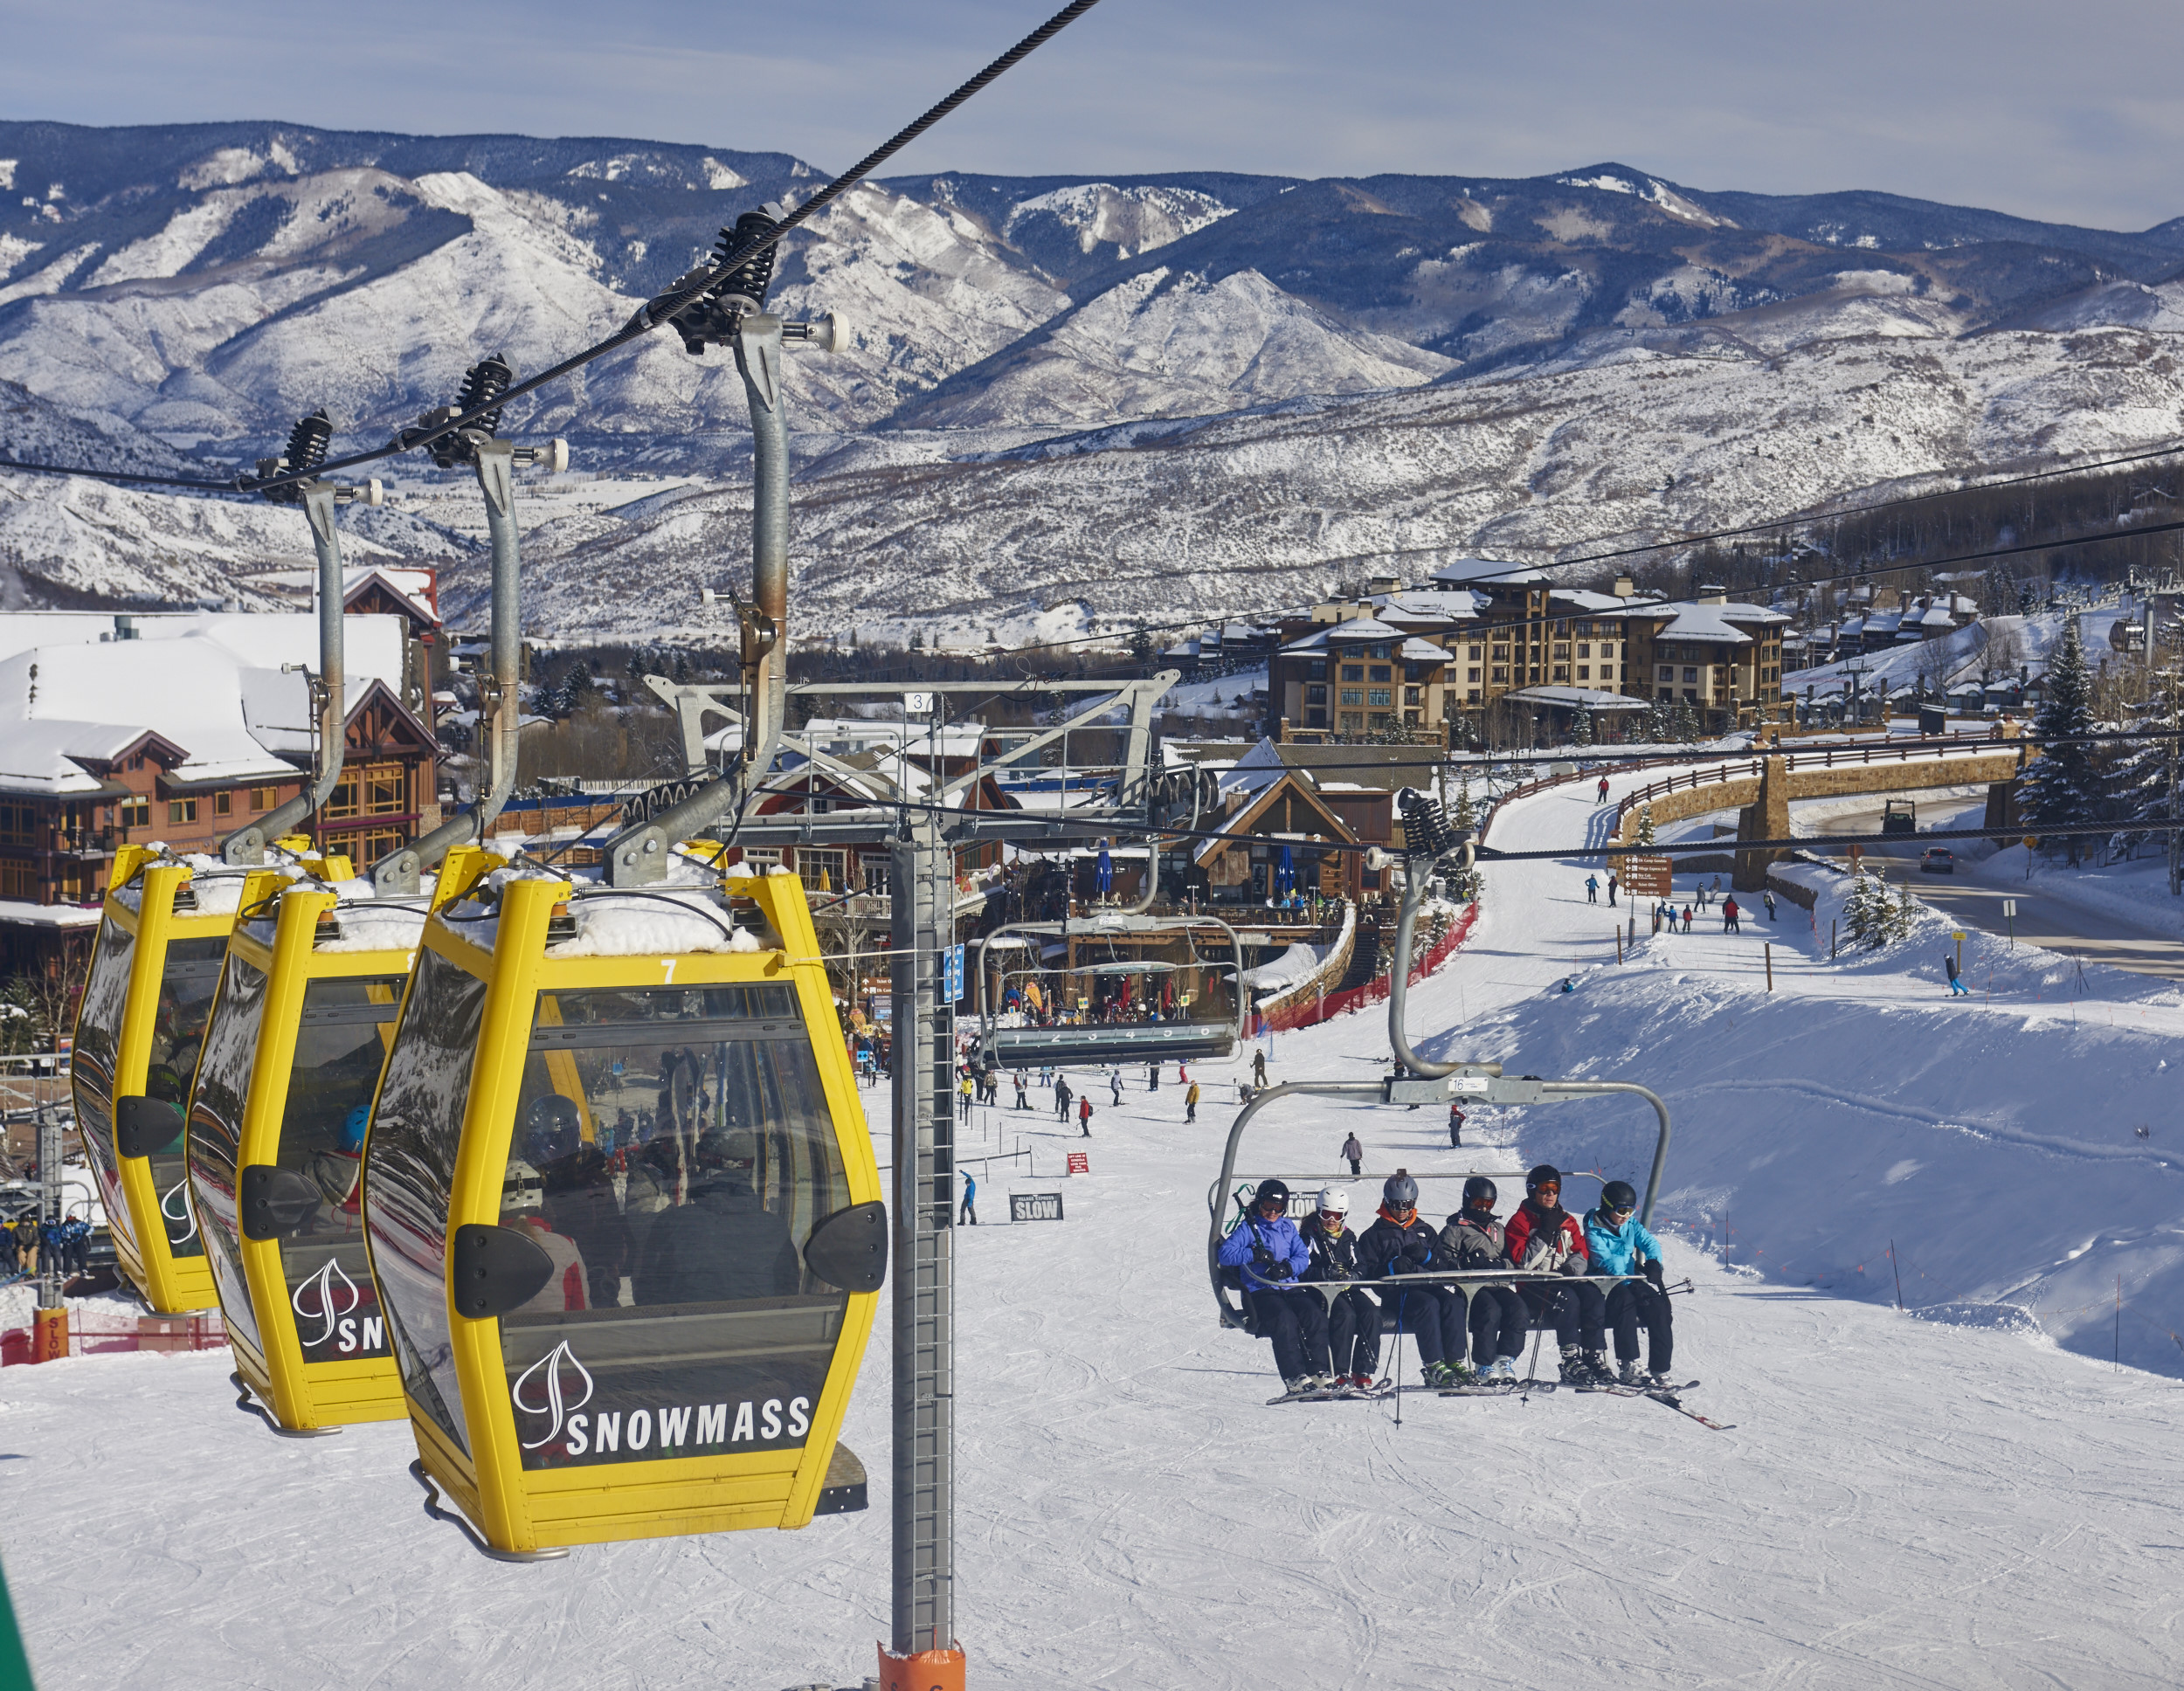 There are so many fabulous ski trails at snowmass, from beginner to expert. Aspen Skiing Company